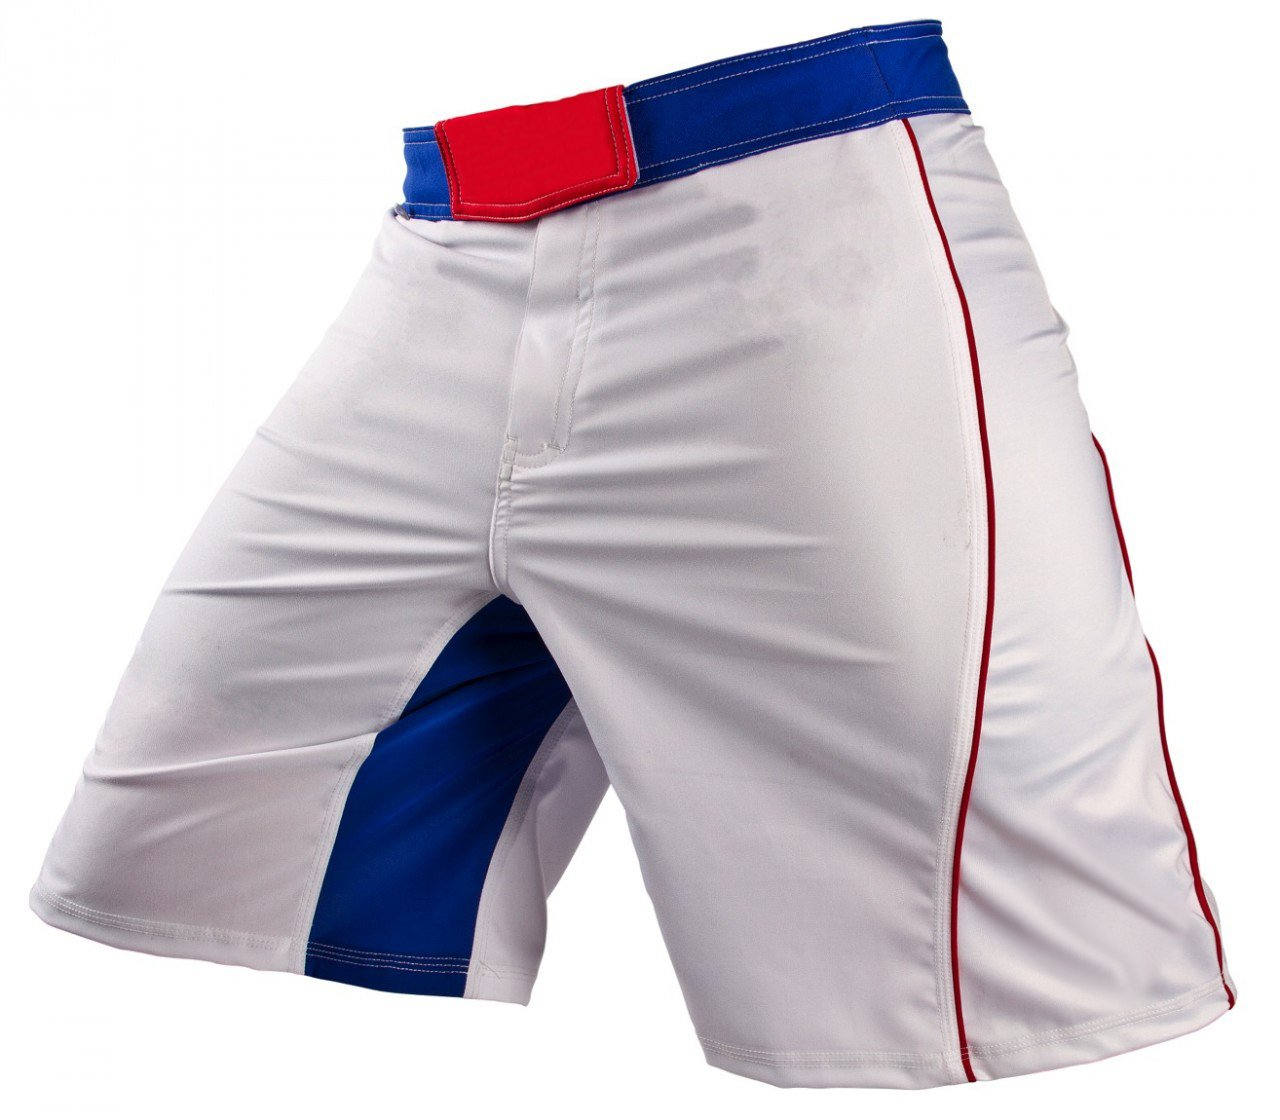 Yet Flexible and Comfortable for Everyday Training Great for all Martial Arts Surfing Blok-iT Fight Shorts These Boxing and MMA Shorts are Competition Grade and Skateboarding